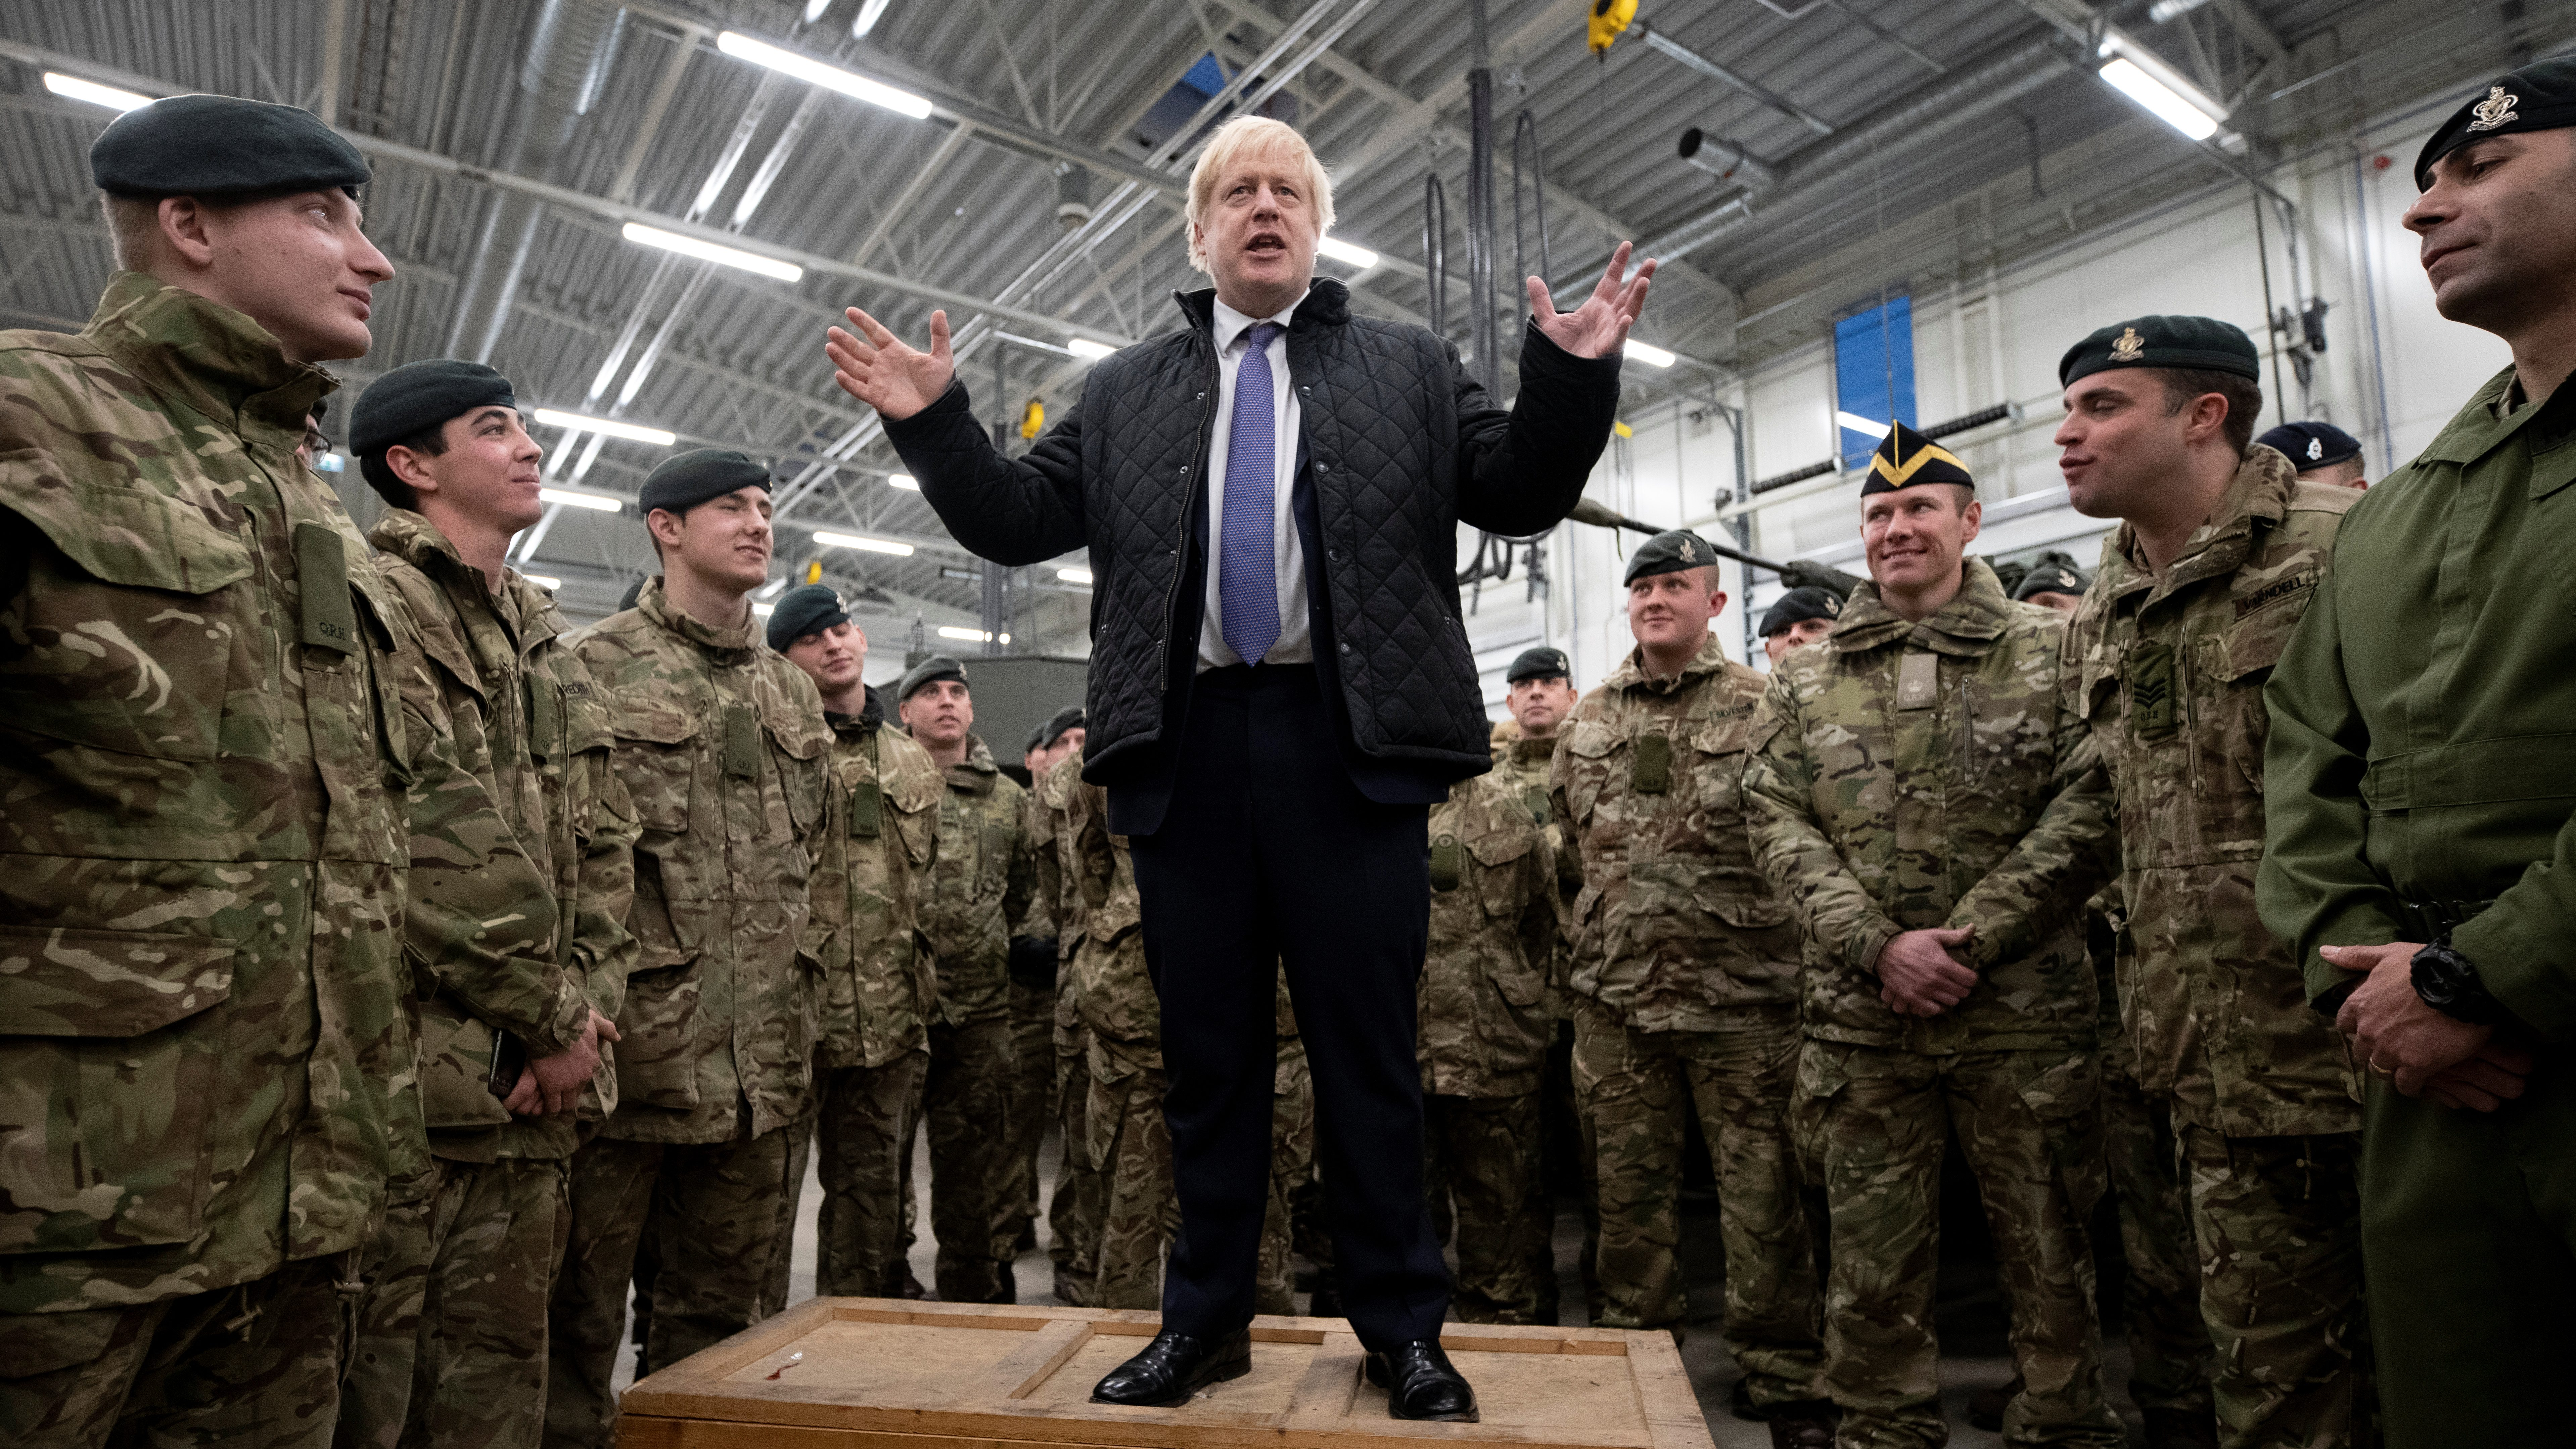 Prime minister Boris Johnson speaks during a visit to British troops stationed in Estonia